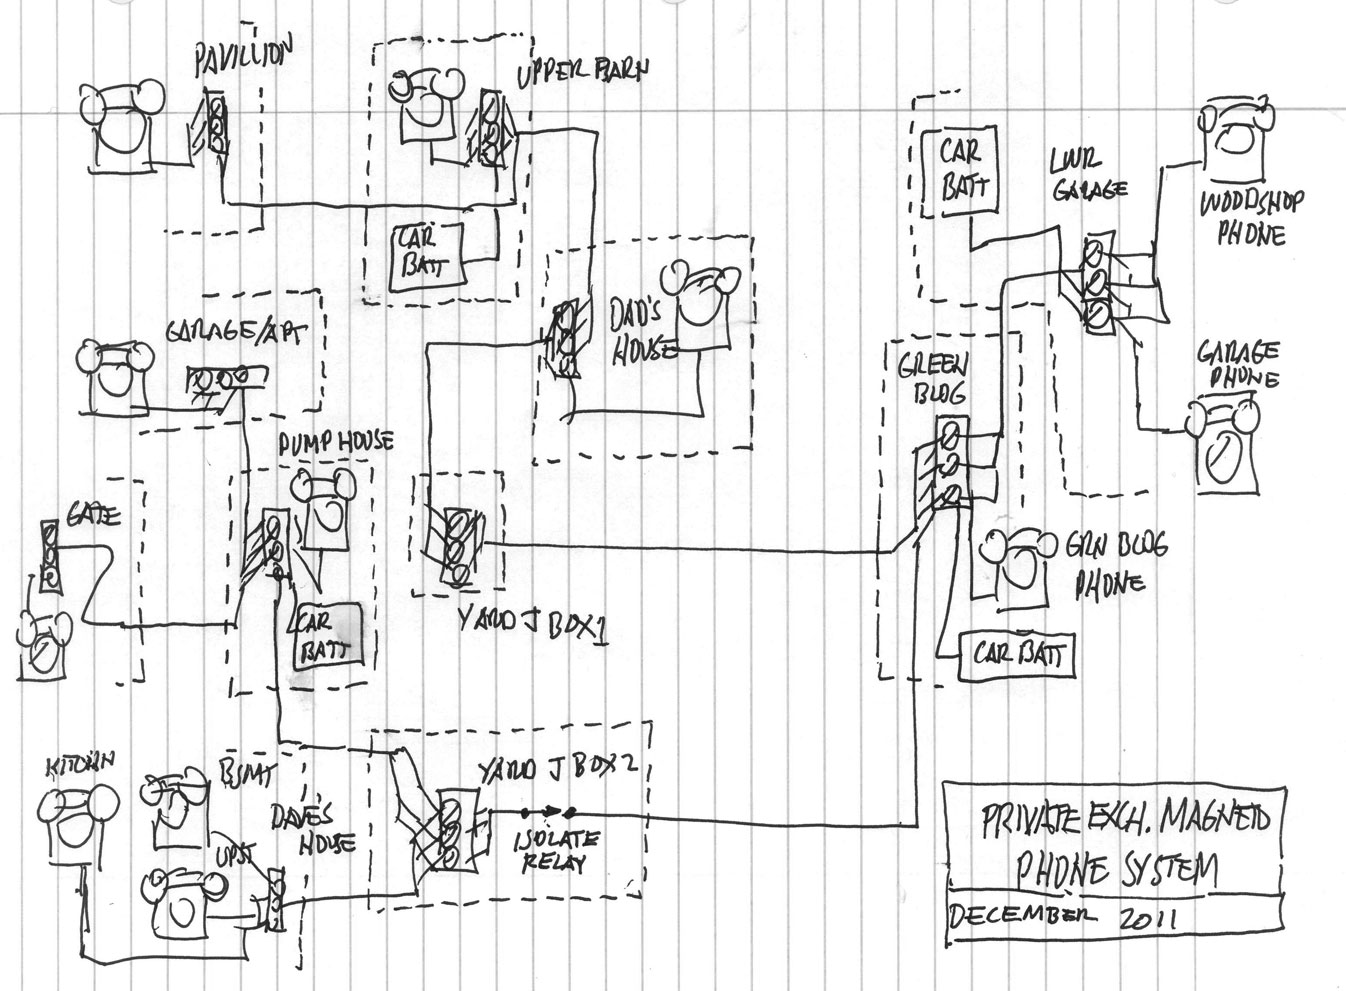 phonesysdiag leich phone Residential Telephone Wiring Diagram at pacquiaovsvargaslive.co